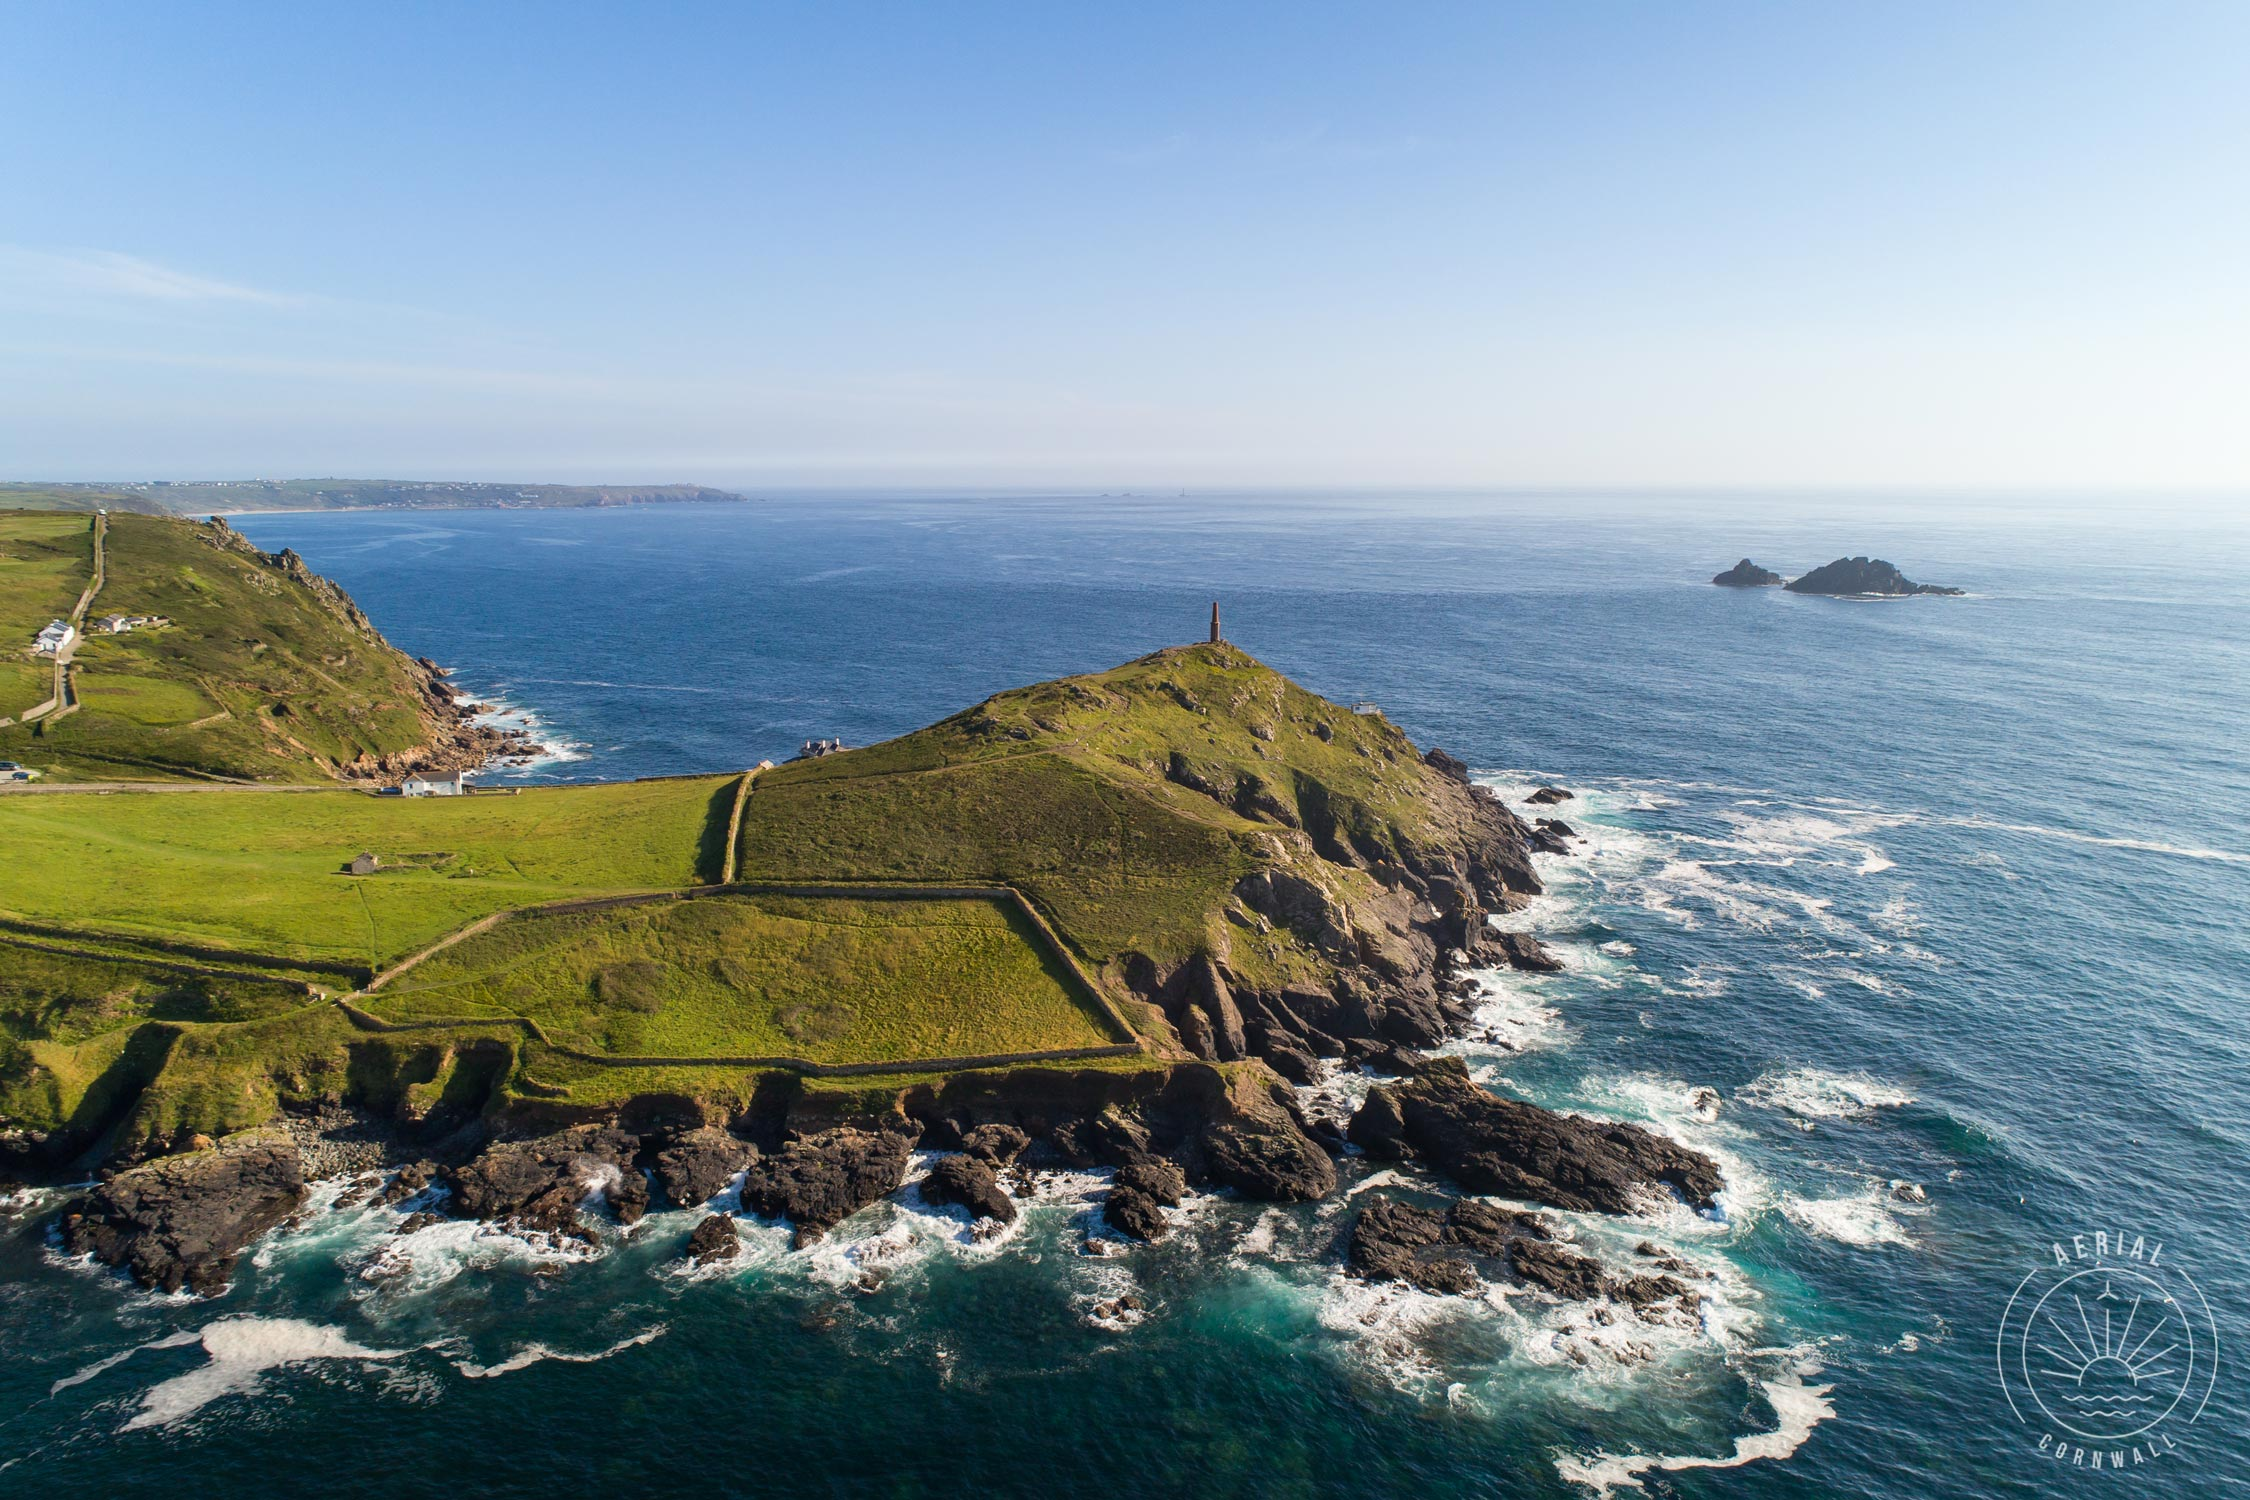 Location: Cape Cornwall